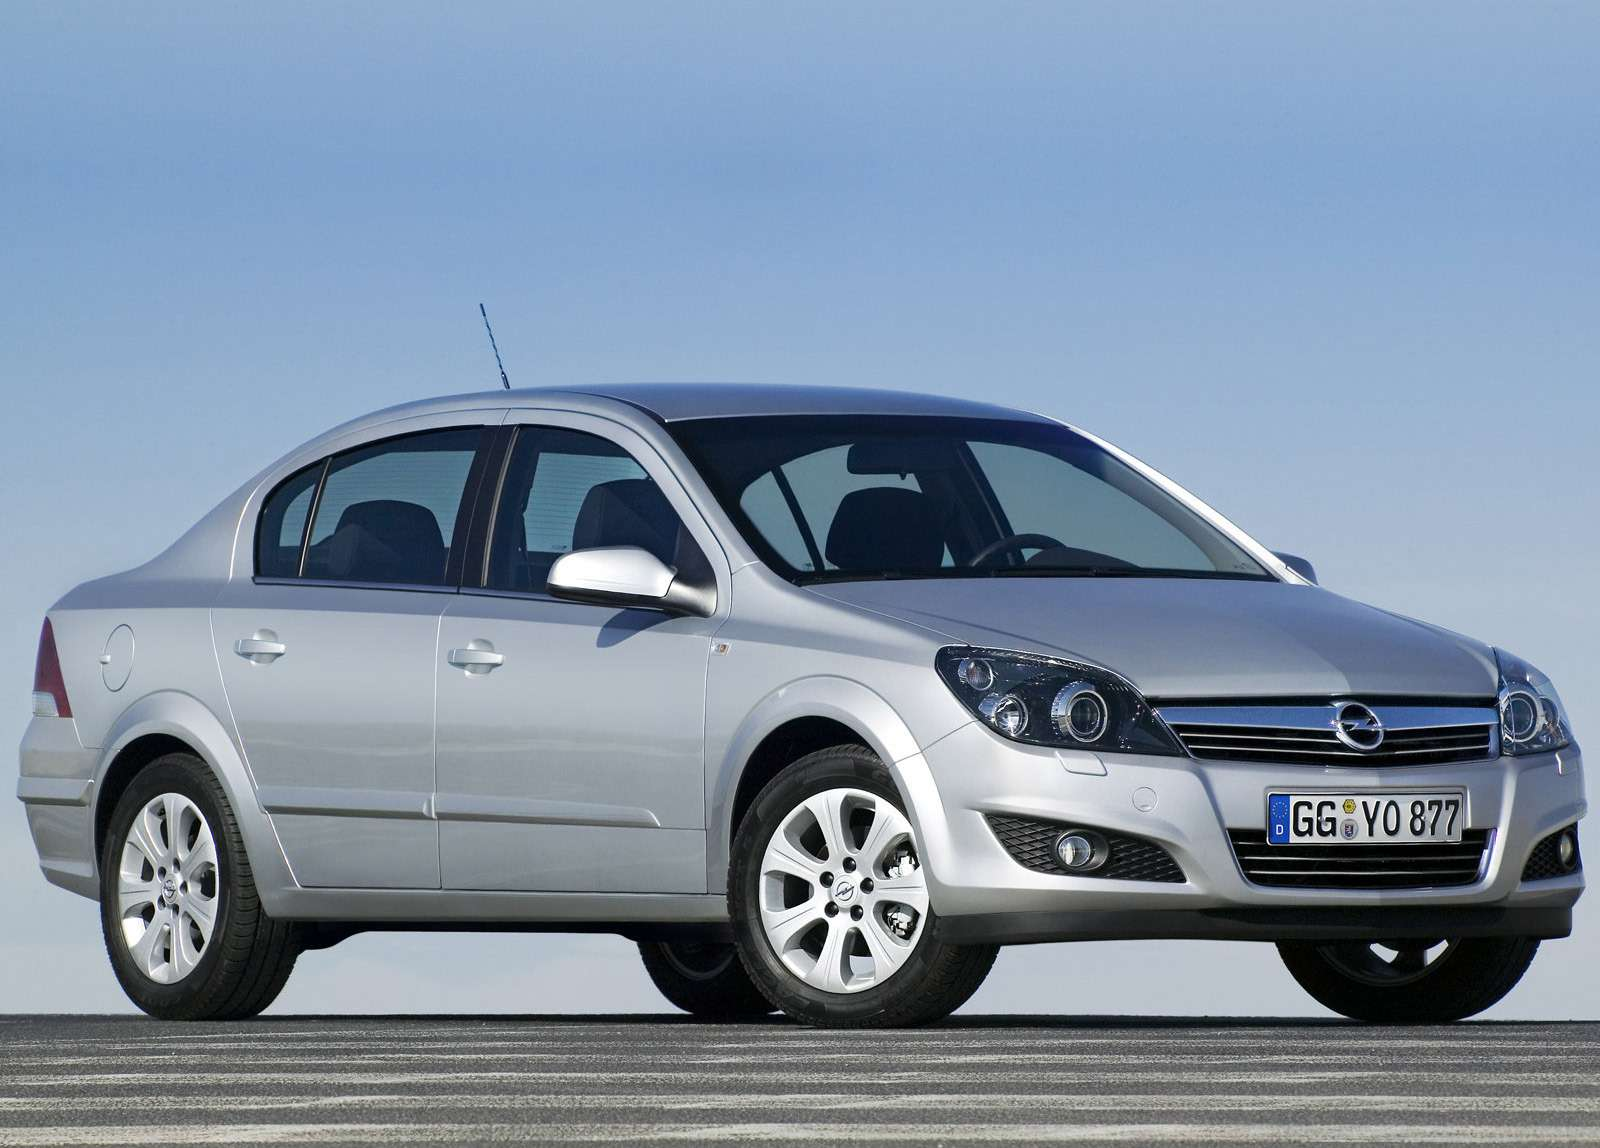 Opel-Astra_Sedan_2007_1600x1200_wallpaper_05